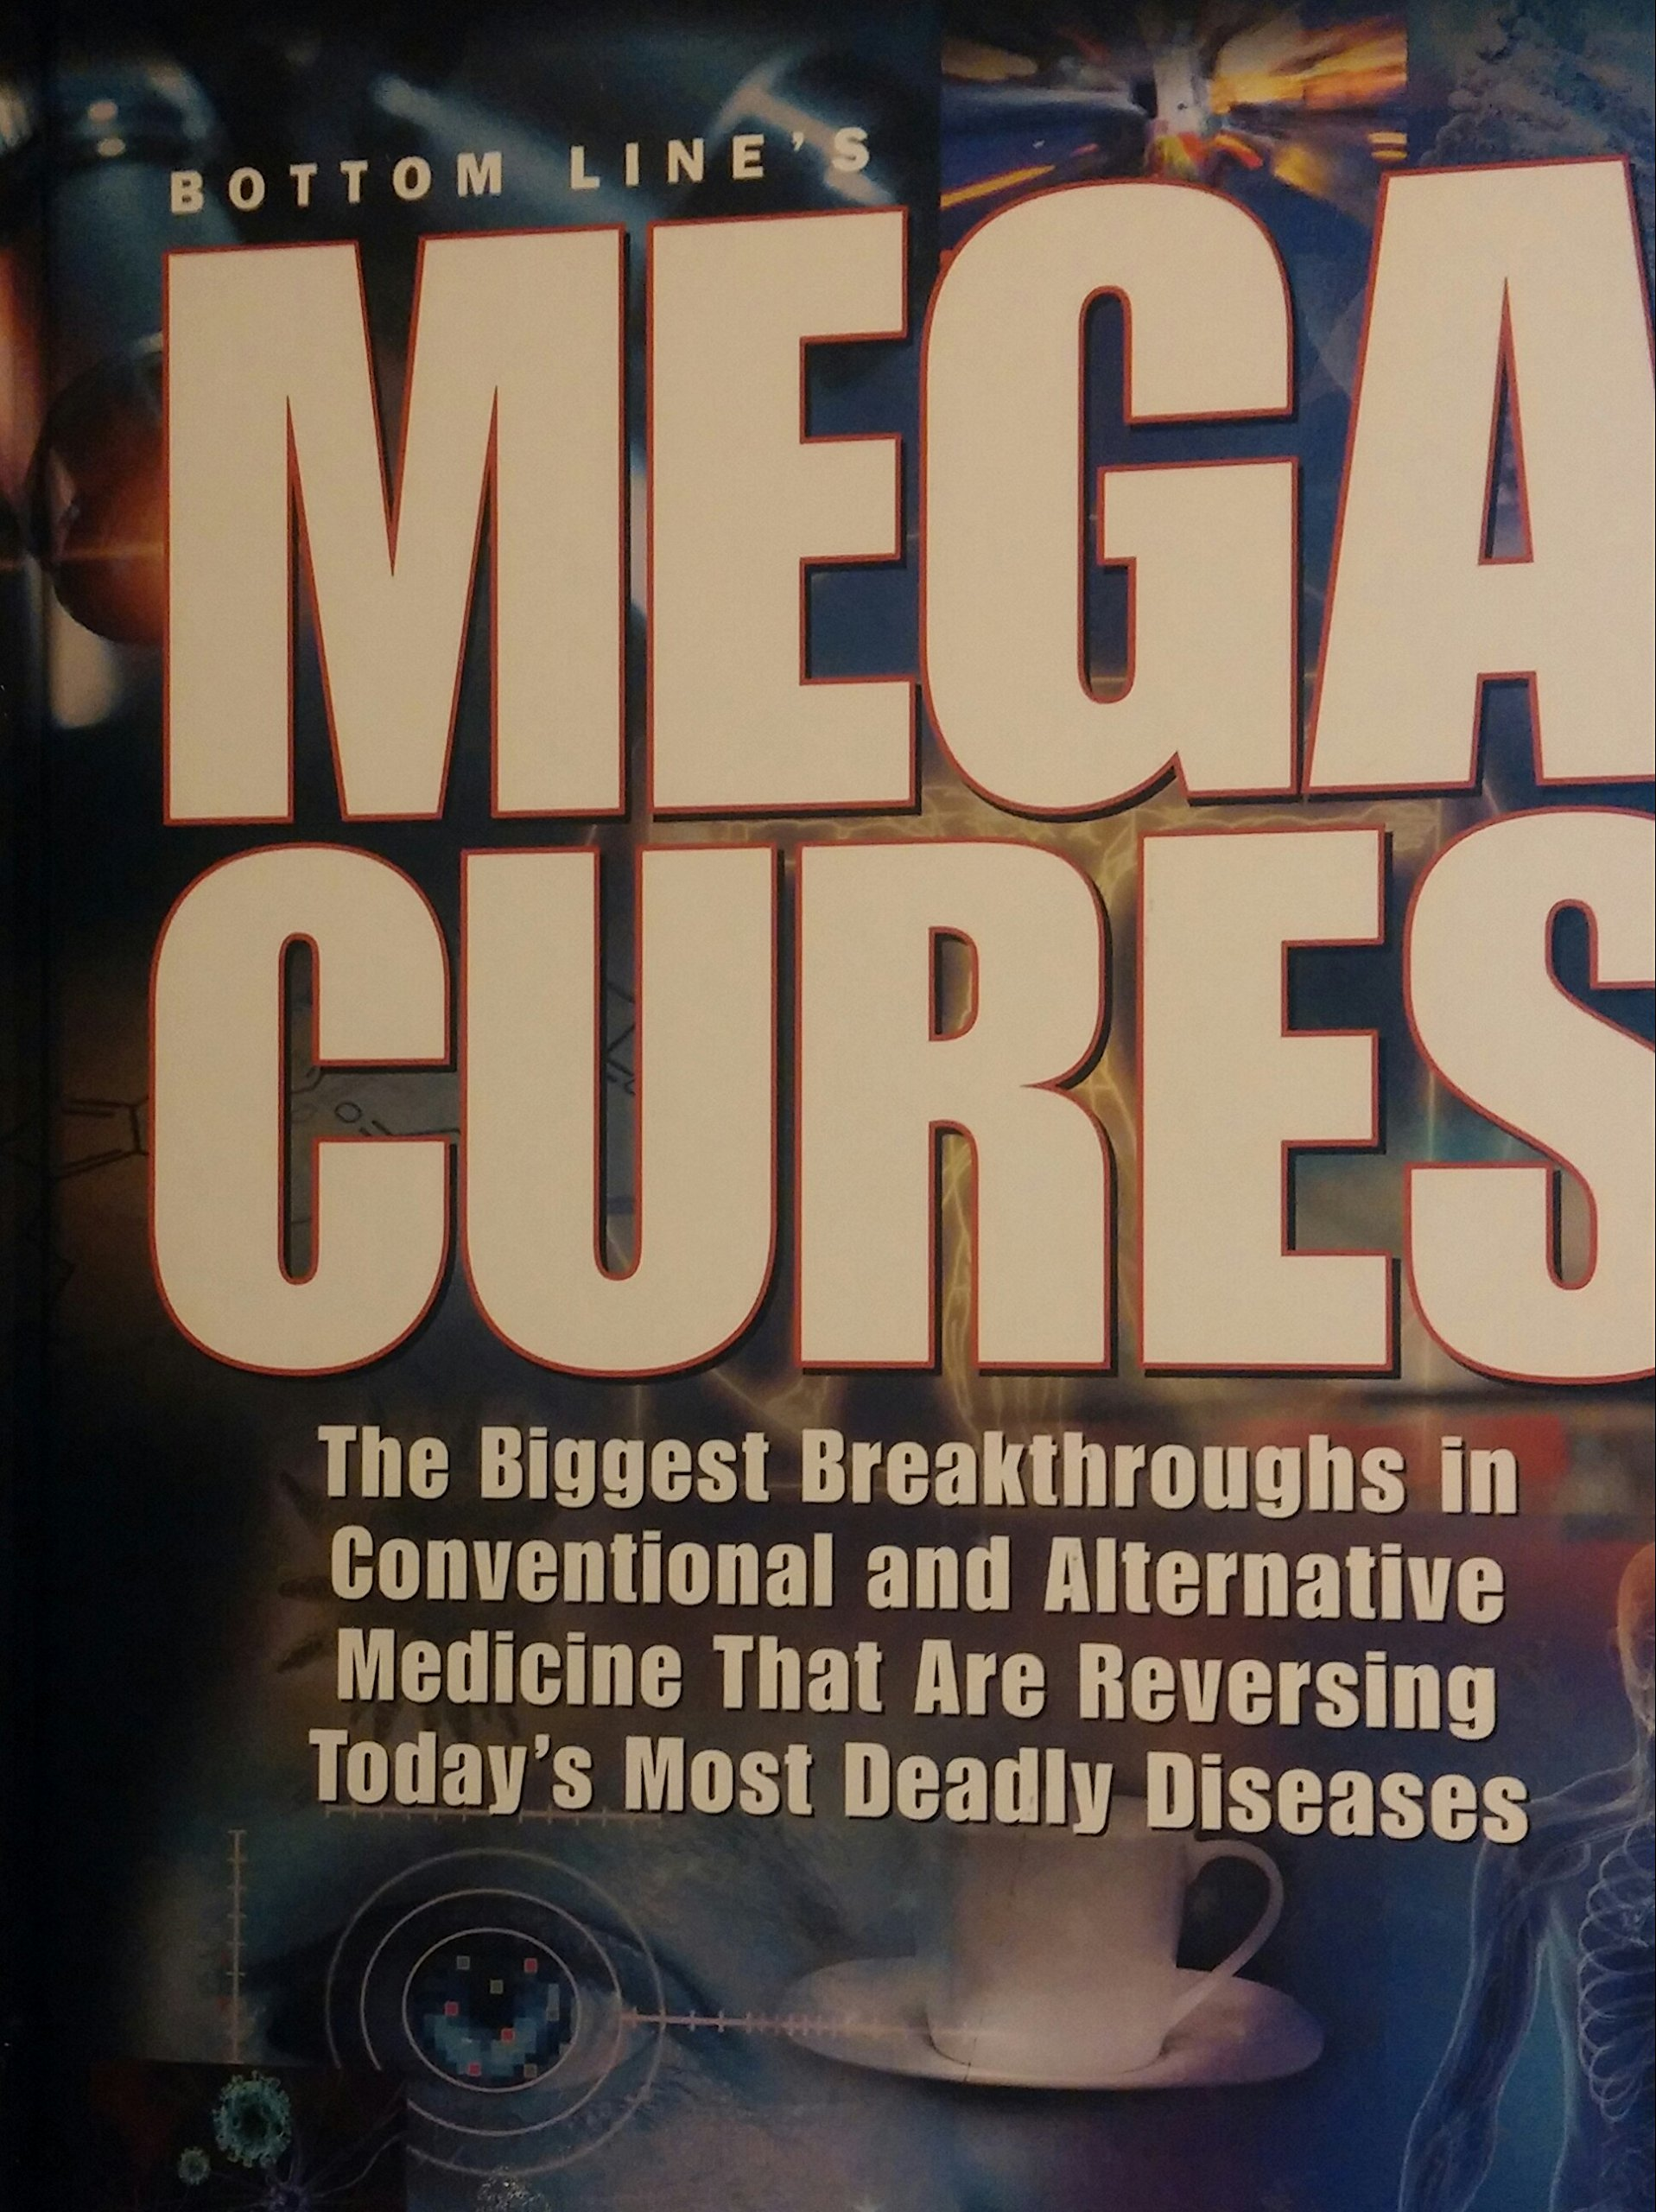 Download Bottom Line's Mega Cures The Biggest Breakthroughs In Conventional And Alternative Medicine That Are Reversing Today's Most Deadly Diseases ebook